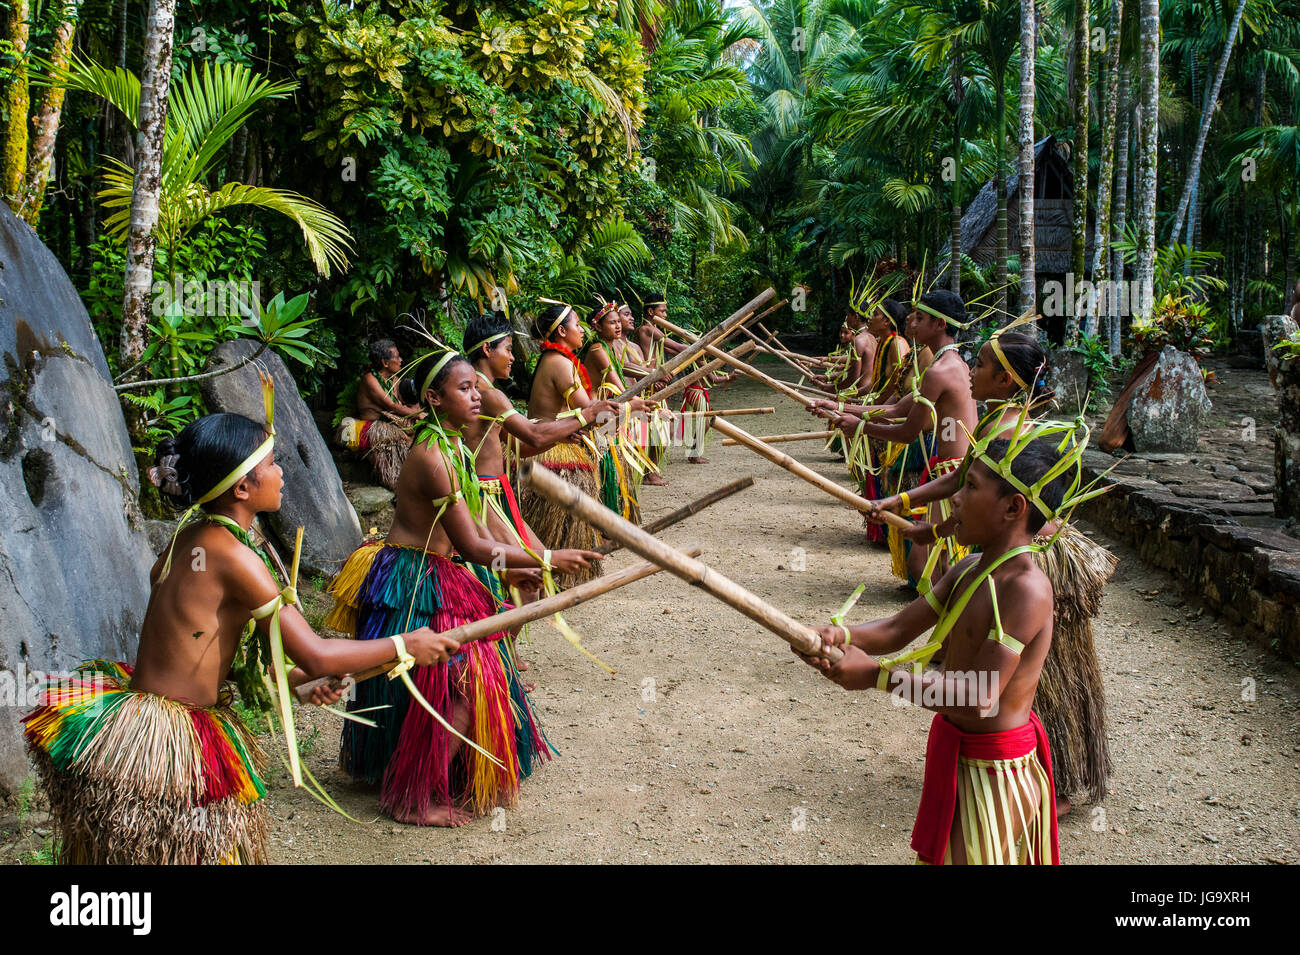 Stick dance from the tribal people of the island of Yap, Micronesia - Stock Image